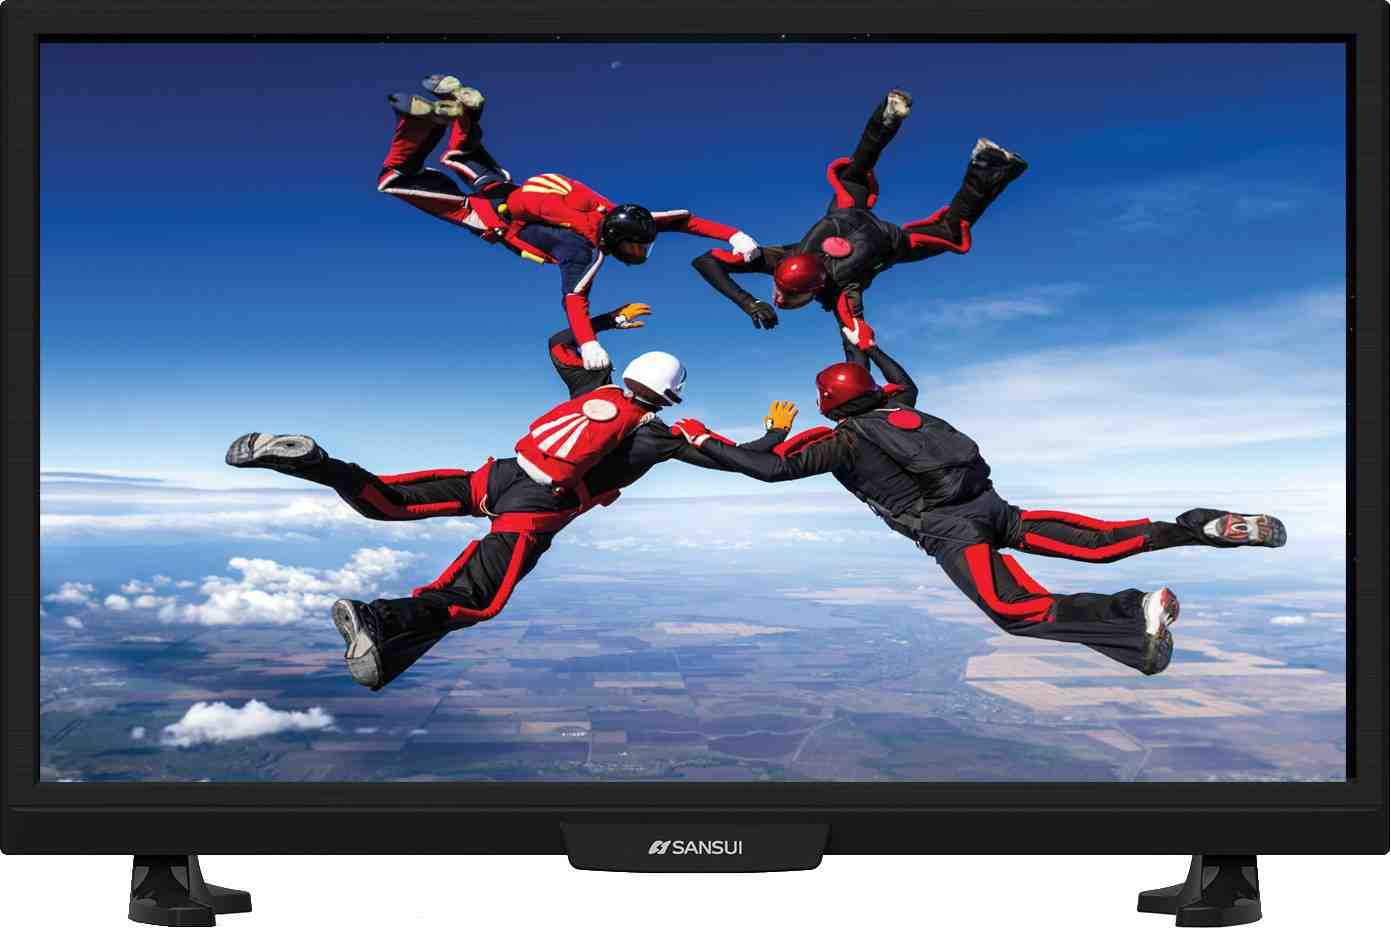 Best price on Sansui SMC32HB12XAF 32 Inch HD LED TV  in India